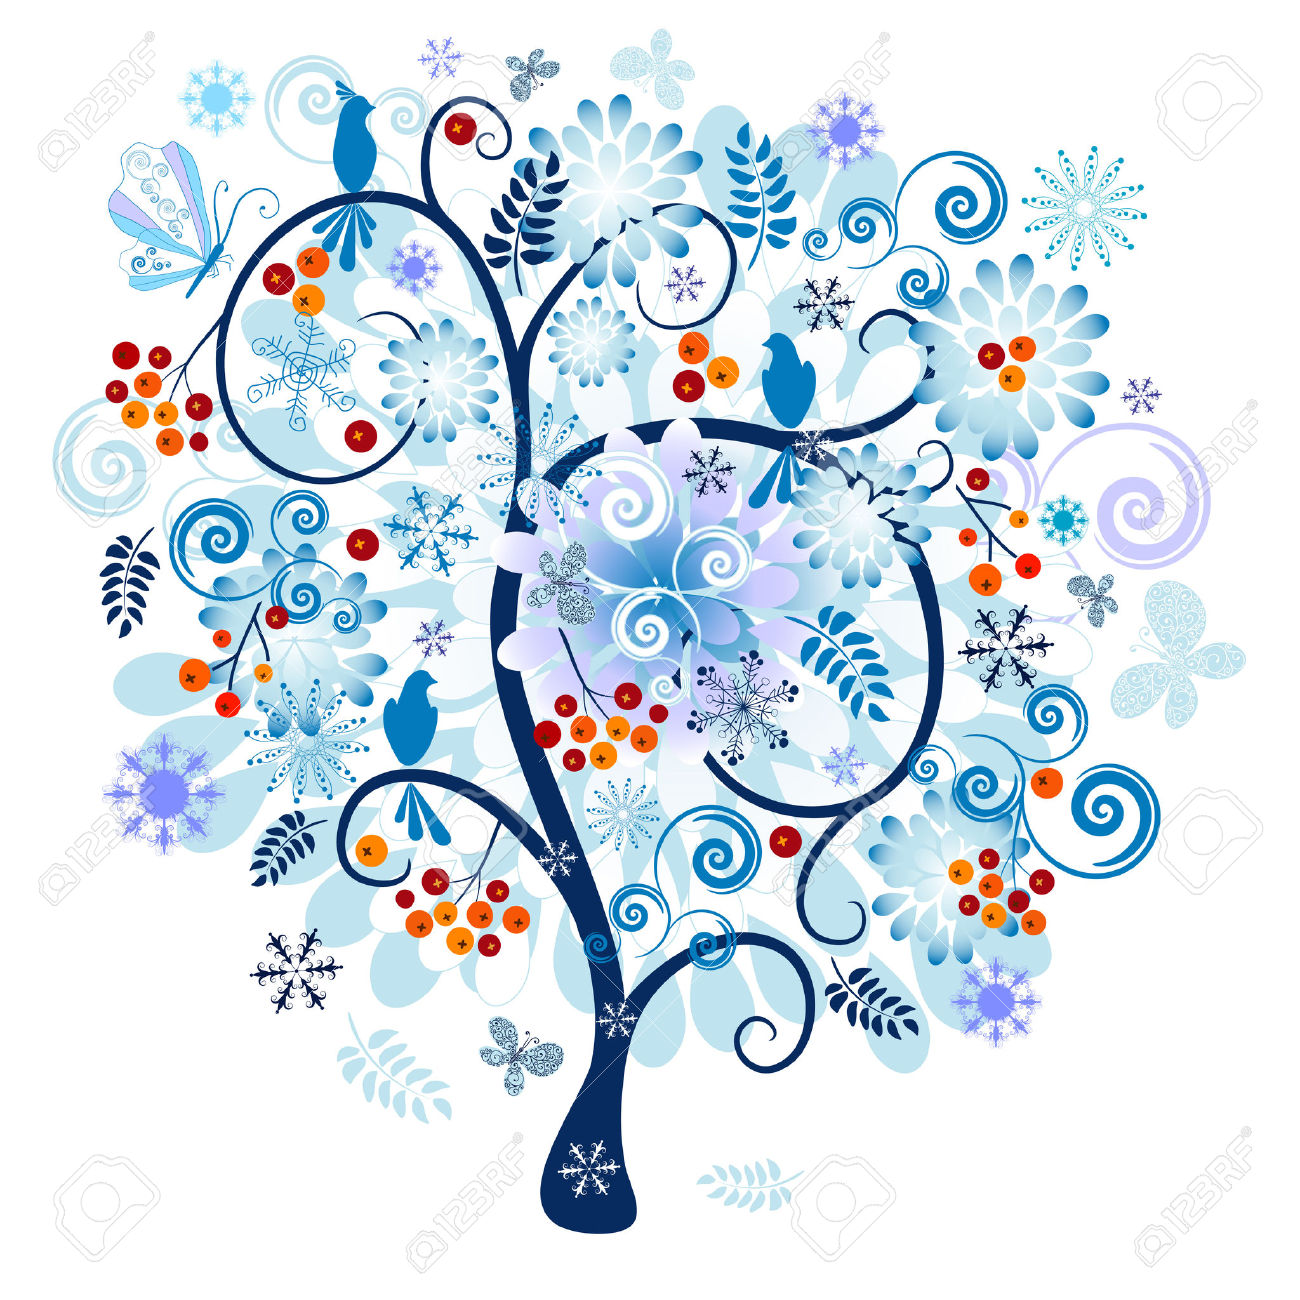 winter tree clipart blue #9